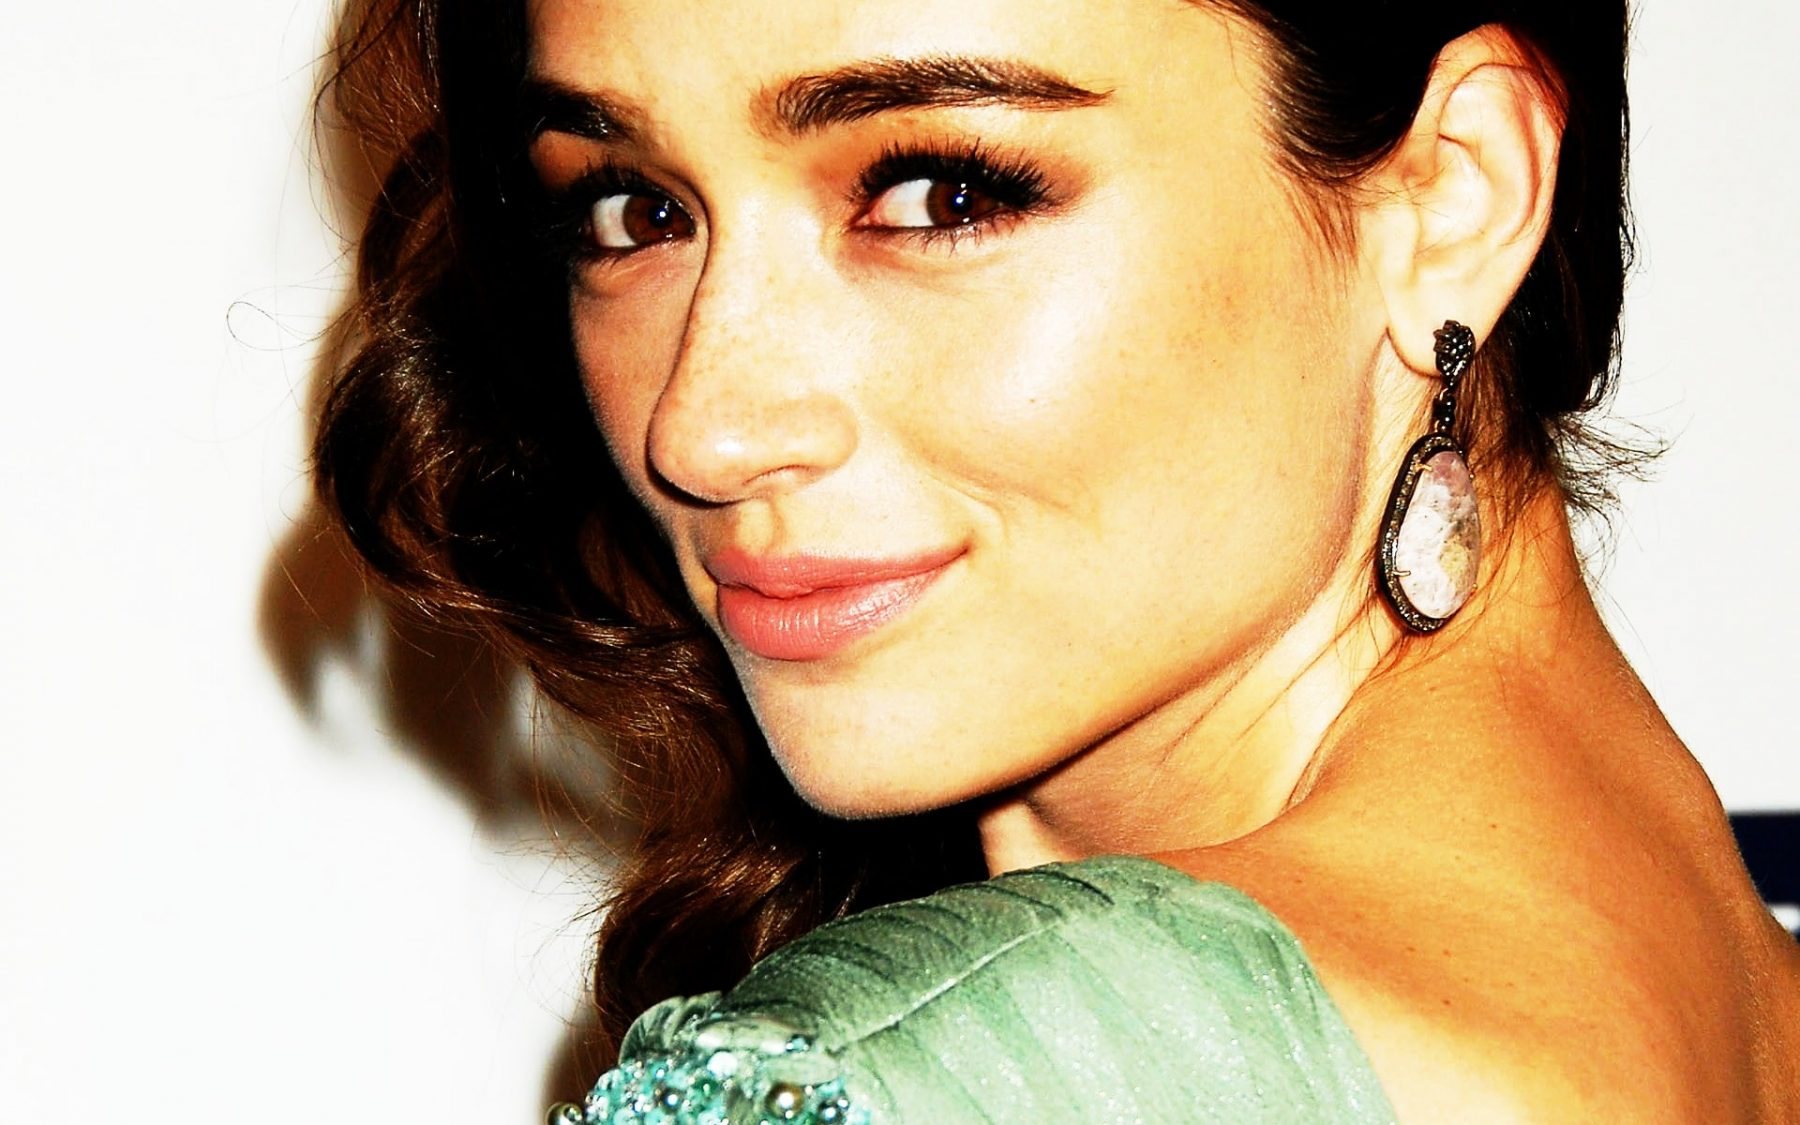 Crystal Reed HD Wallpapers | 7wallpapers.net